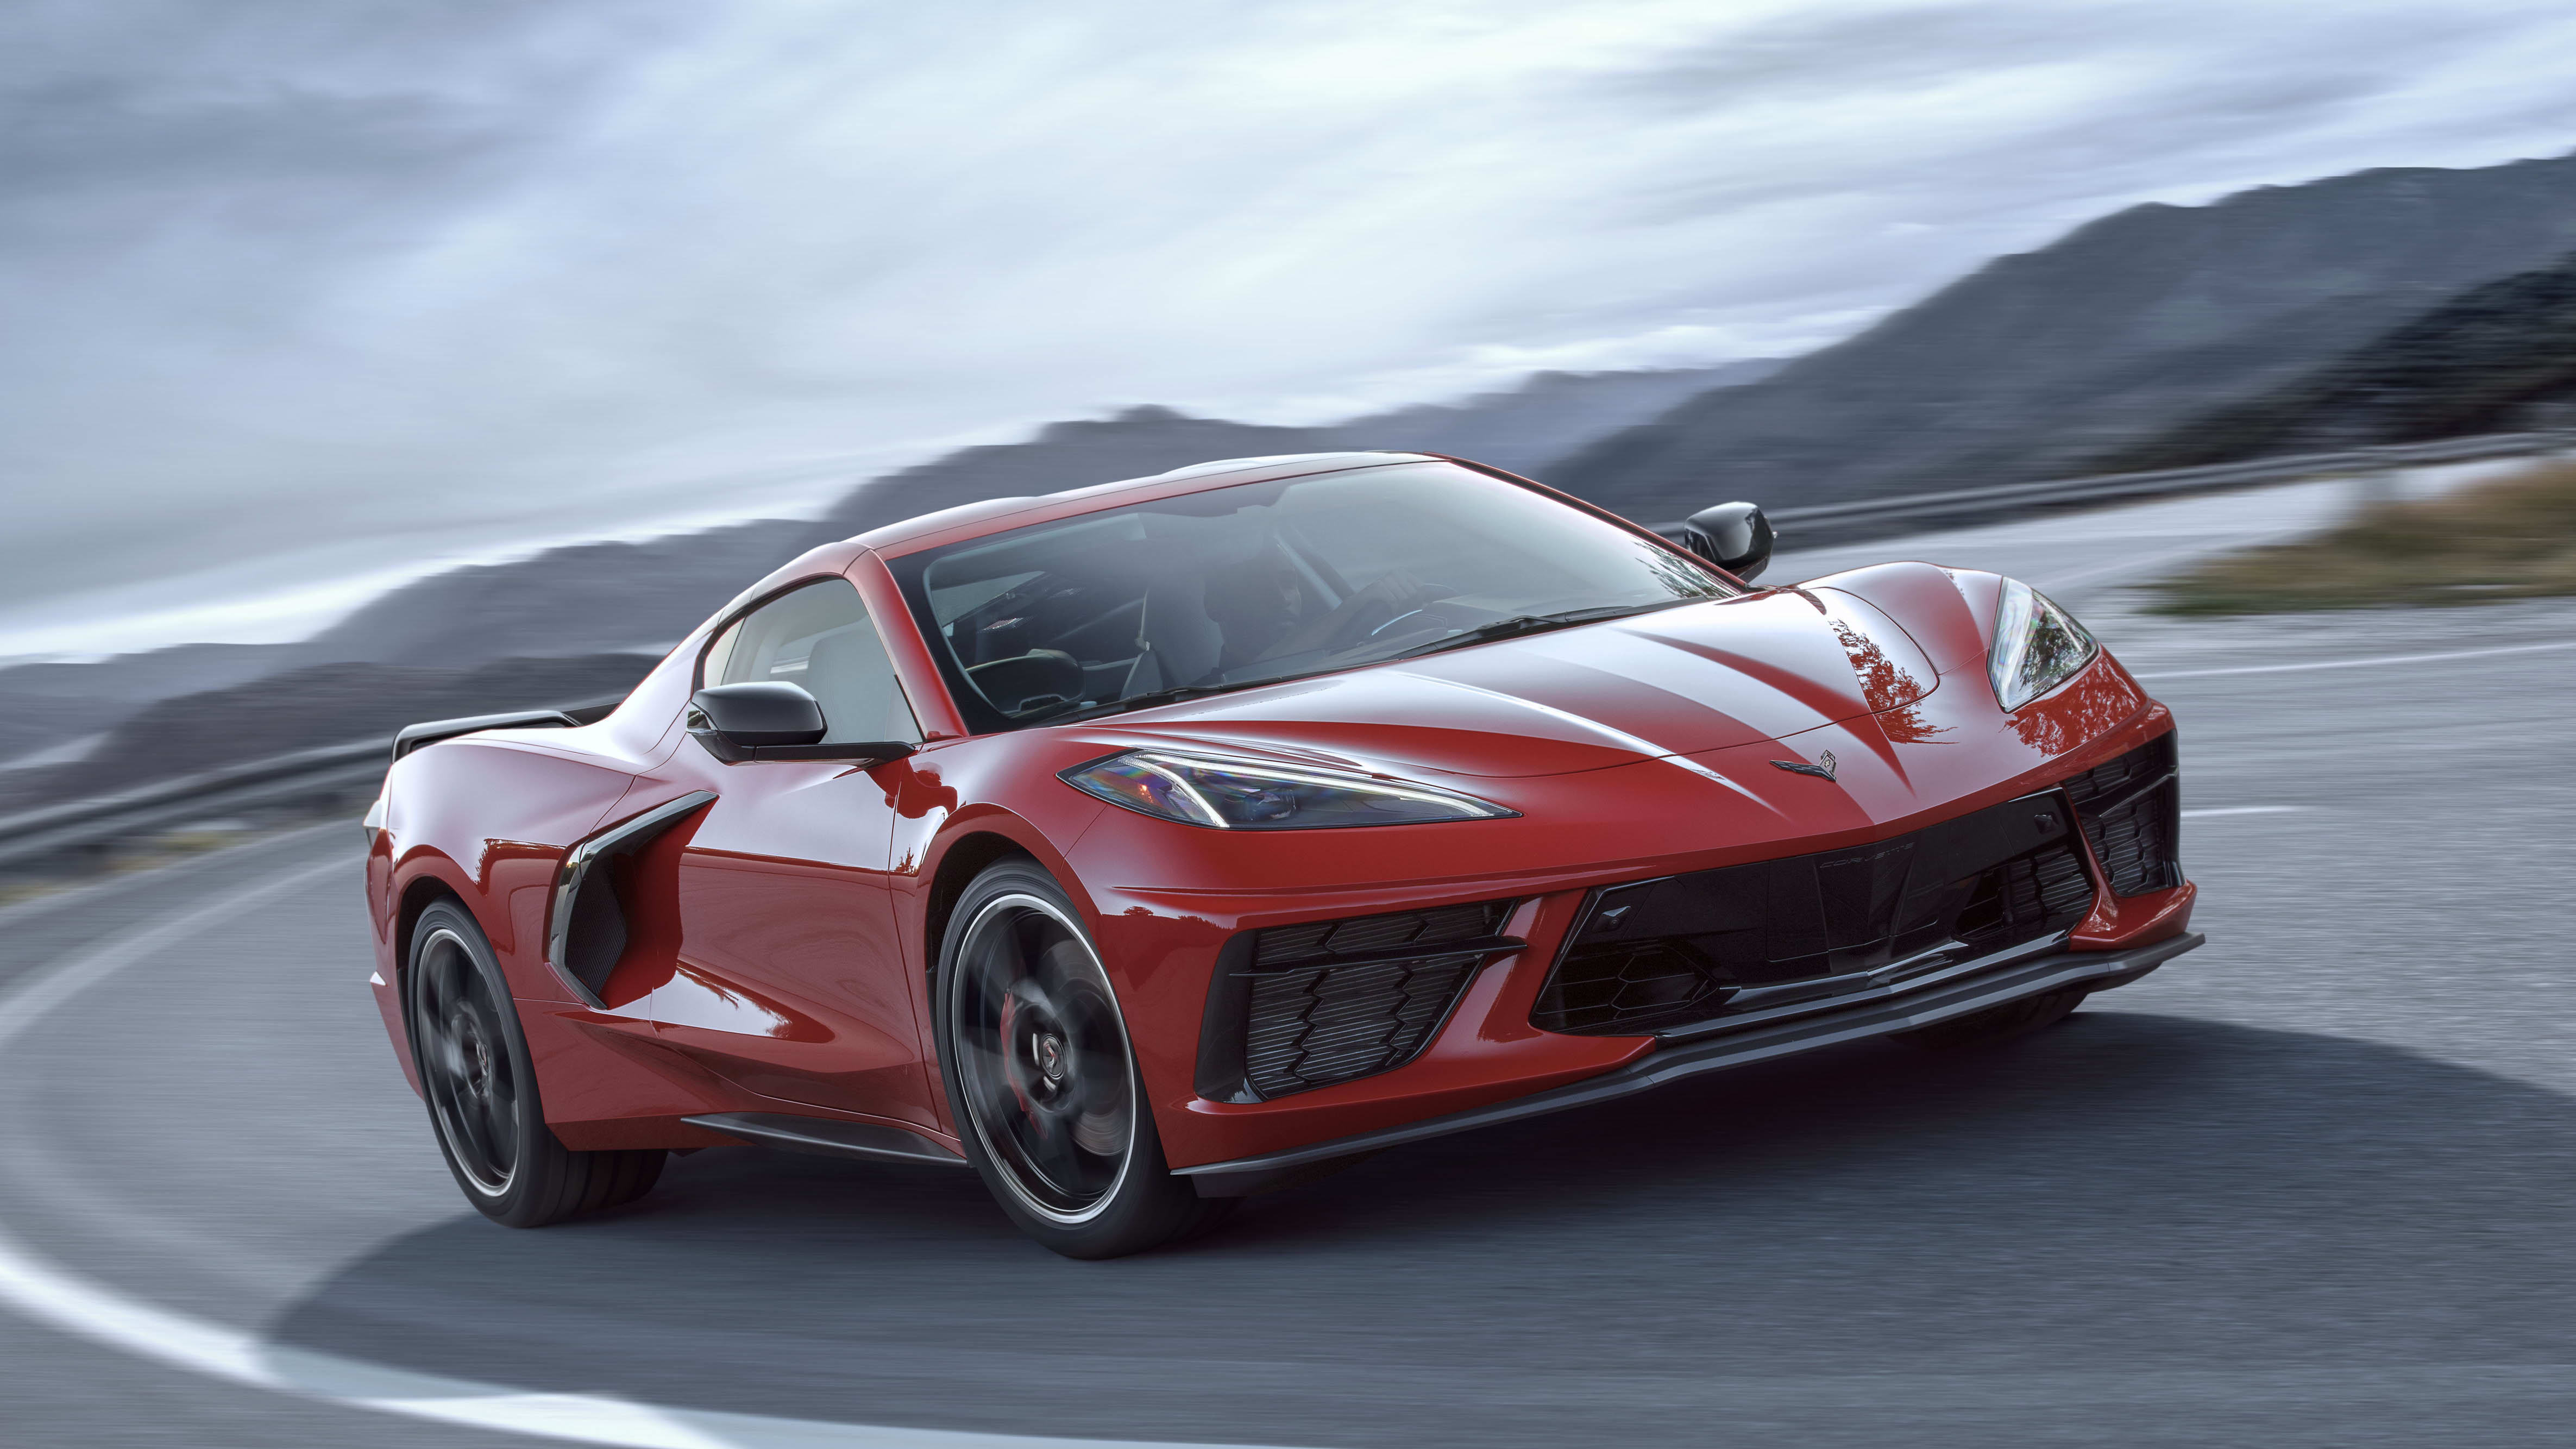 Two Chevrolet Corvette C8 Engineering Test Cars Impounded Drivers Arrested For Street Racing Caradvice